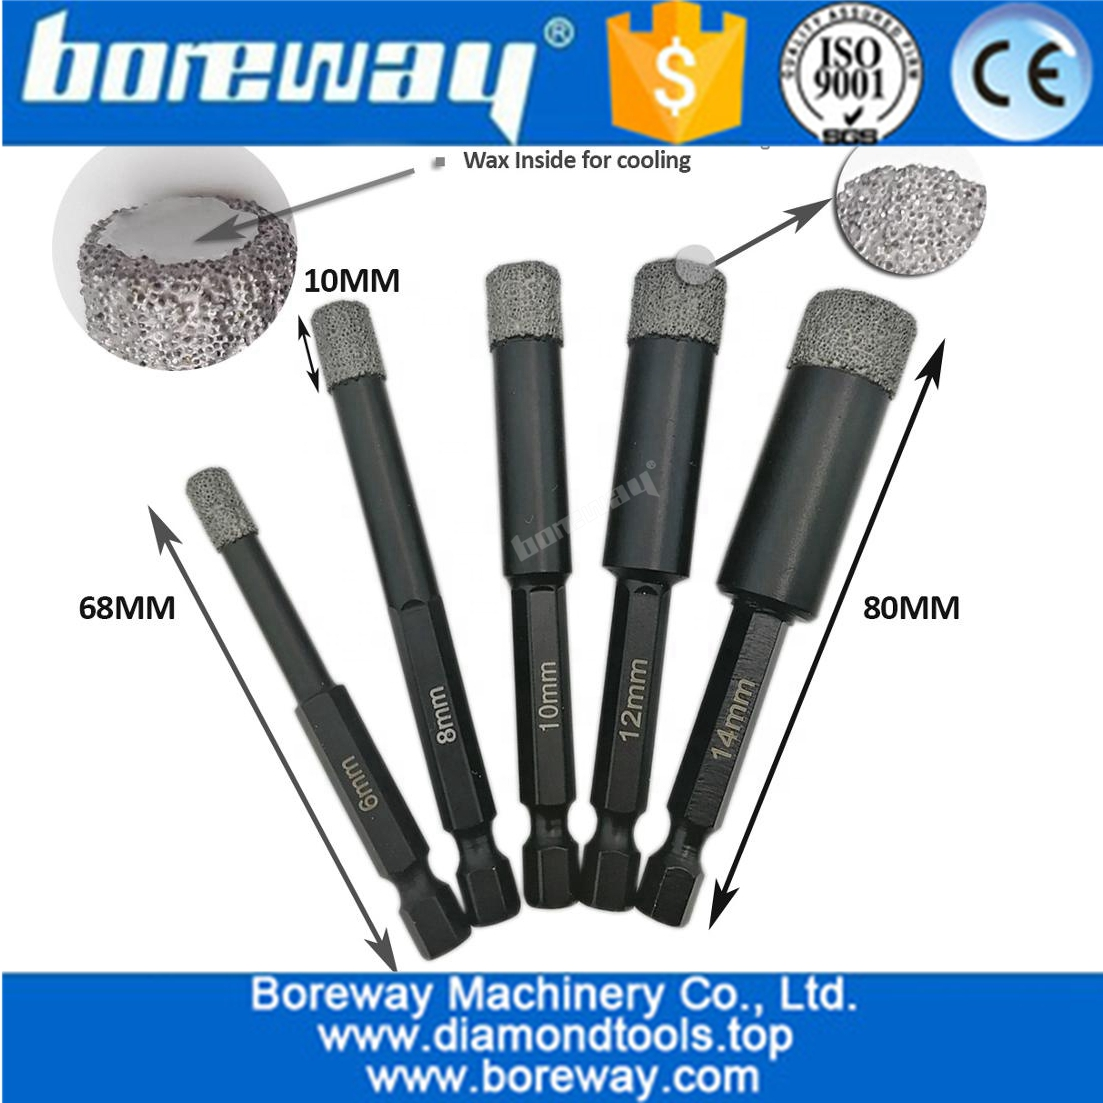 Vacuum Brazed Dry drilling core bits with quick-fit shank, best quality vacuum brazed diamond core drill bits